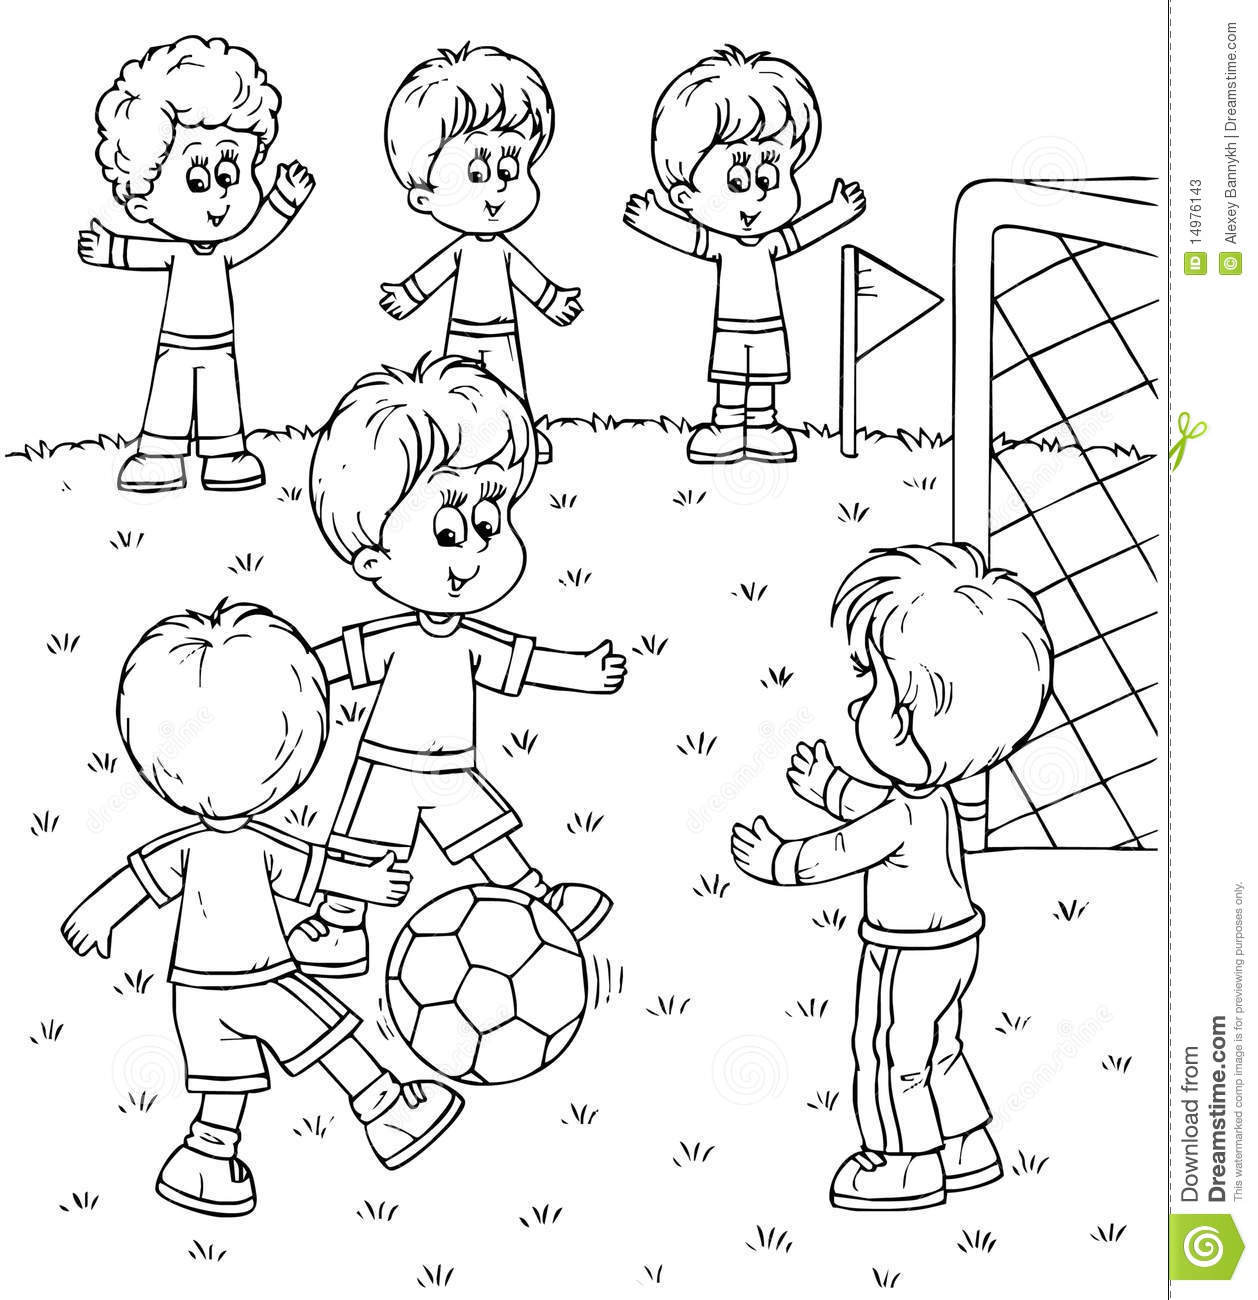 soccer game coloring pages - photo#20